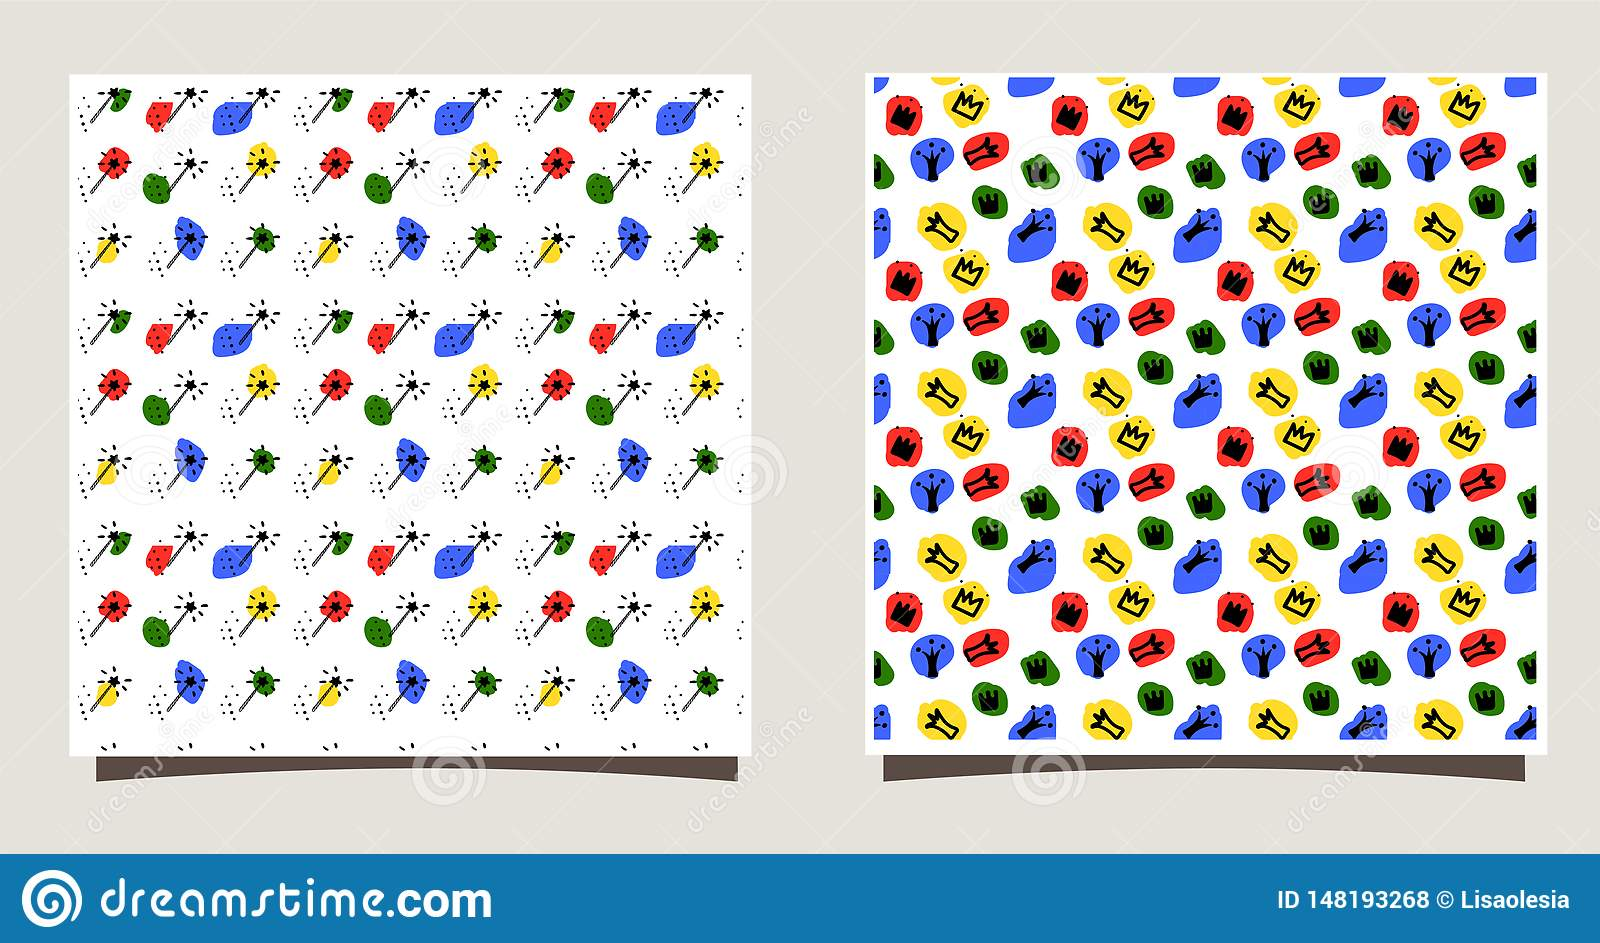 Repeating Tile with silhouettes of different crowns, dots, magic sticks. Funny vector illustration.